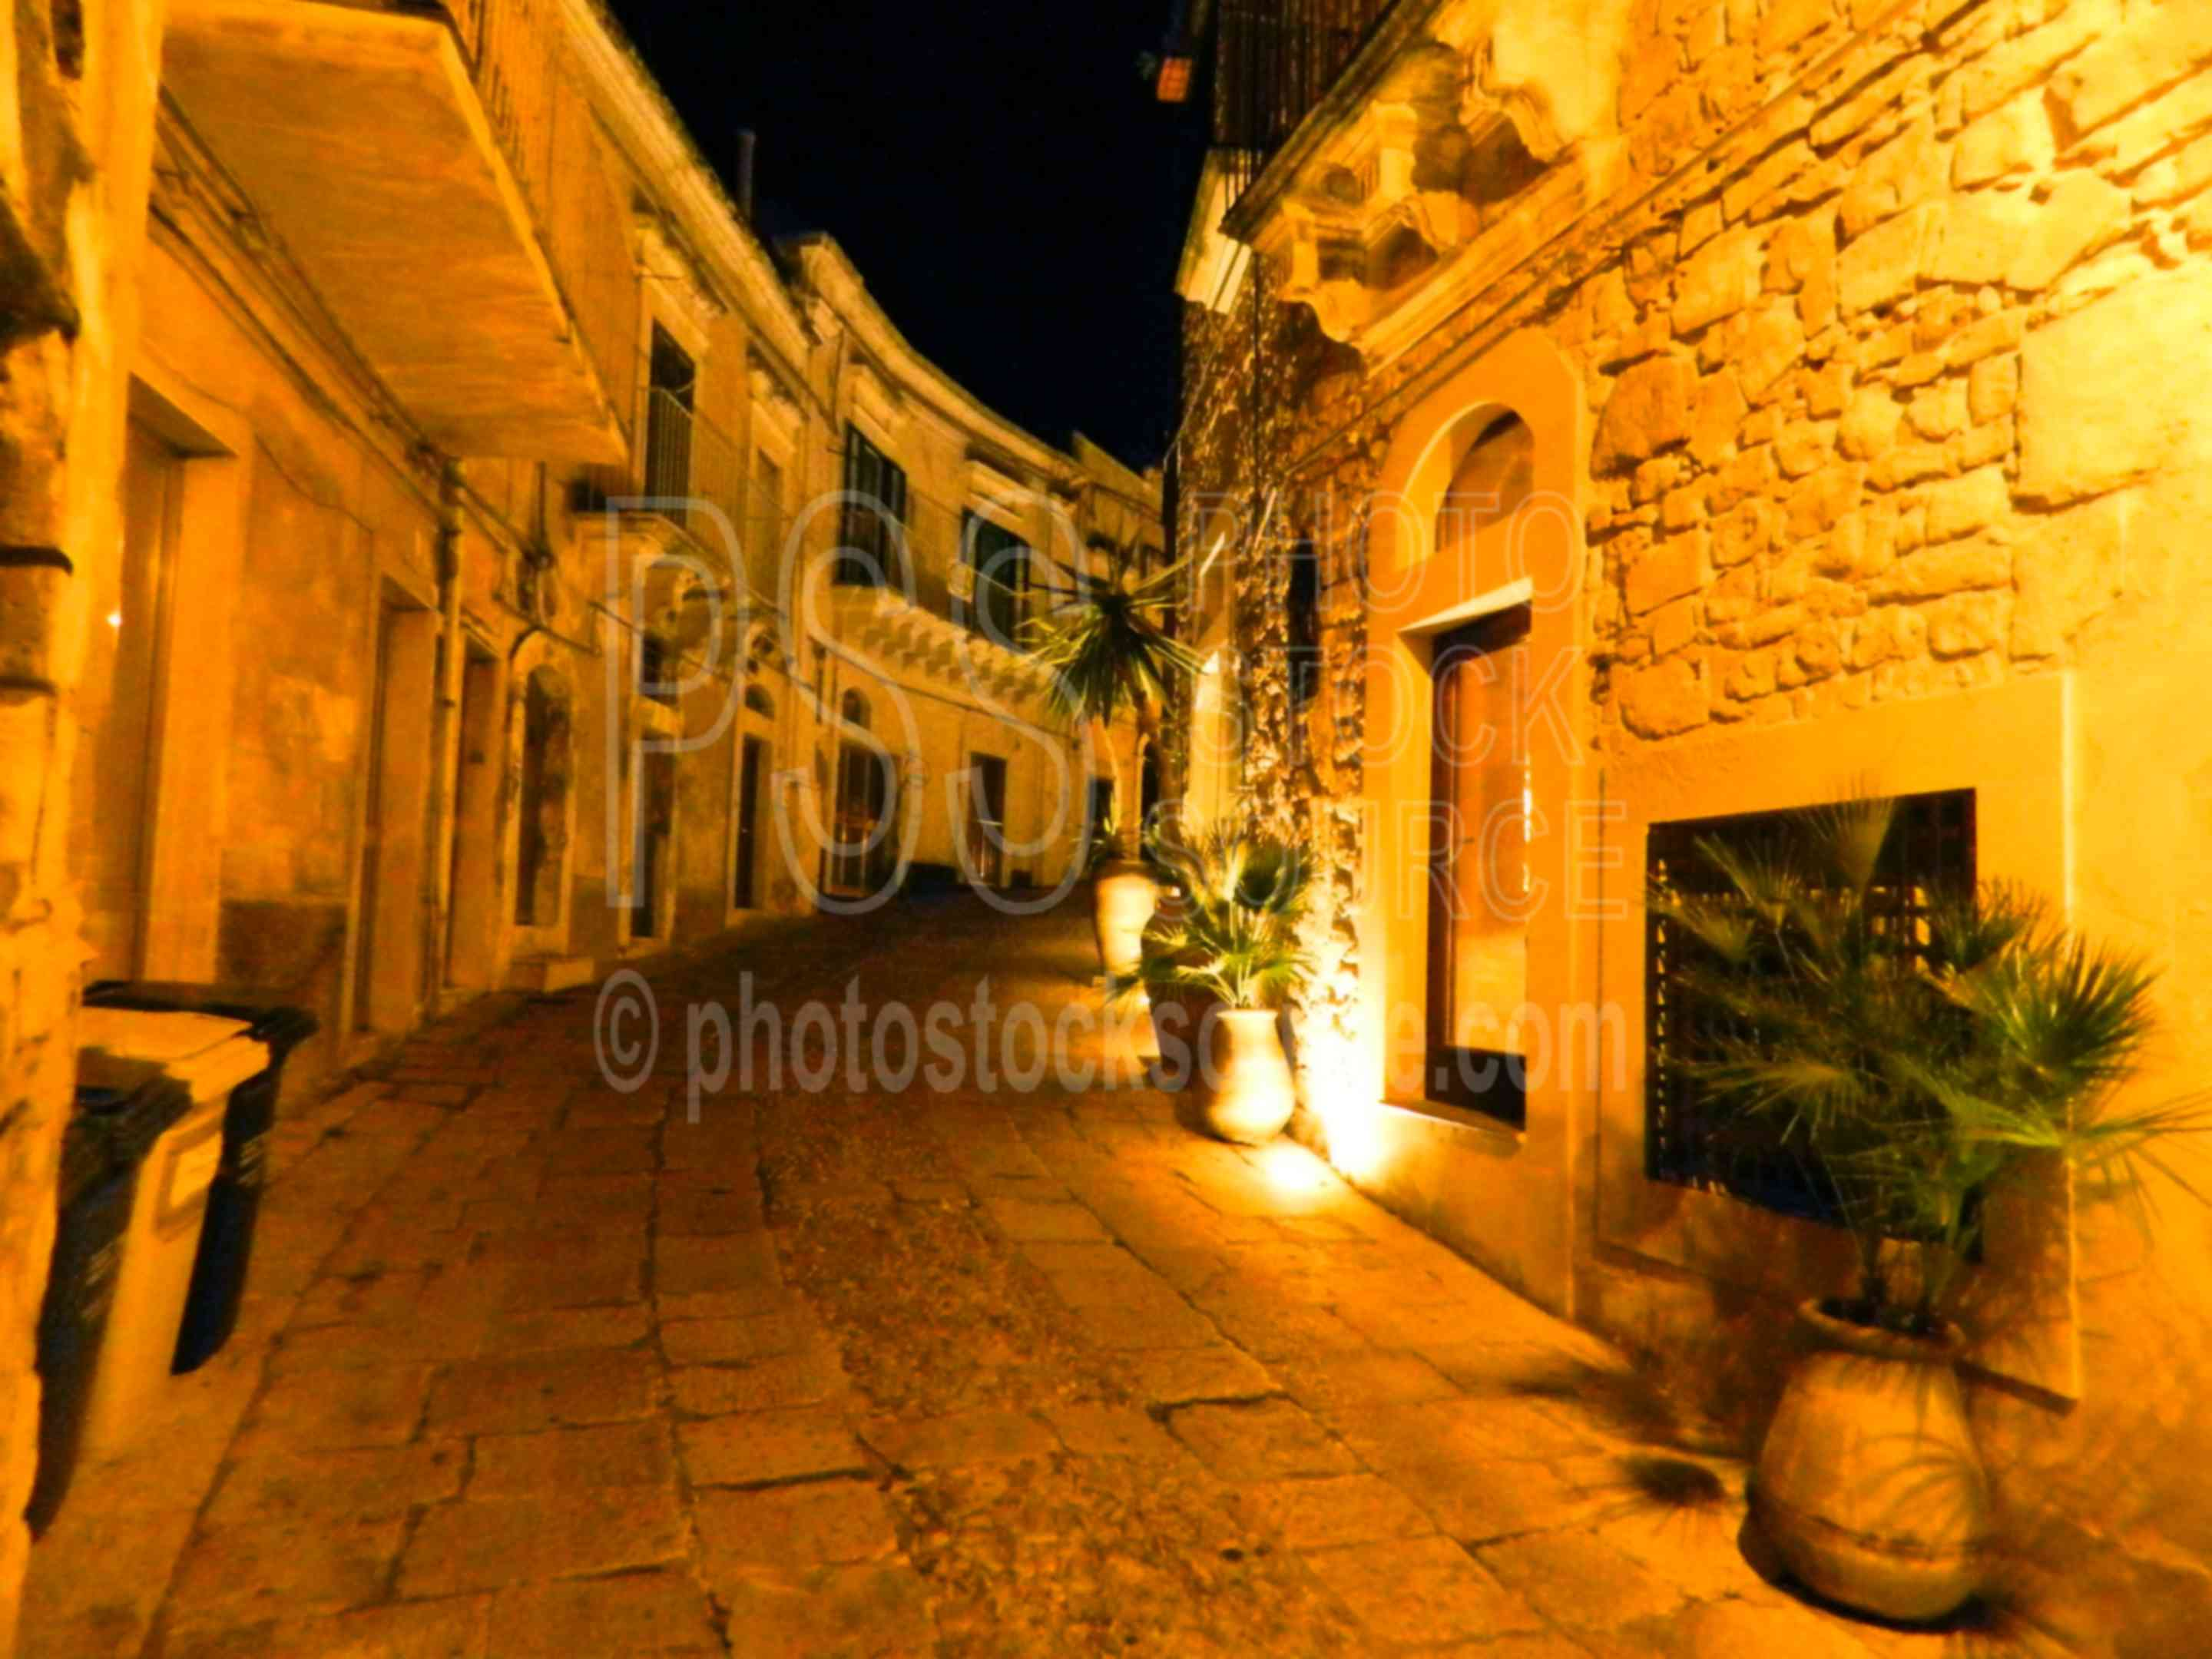 Ragusa Streets at Night,ragusa,ragusa ibla,streets,night